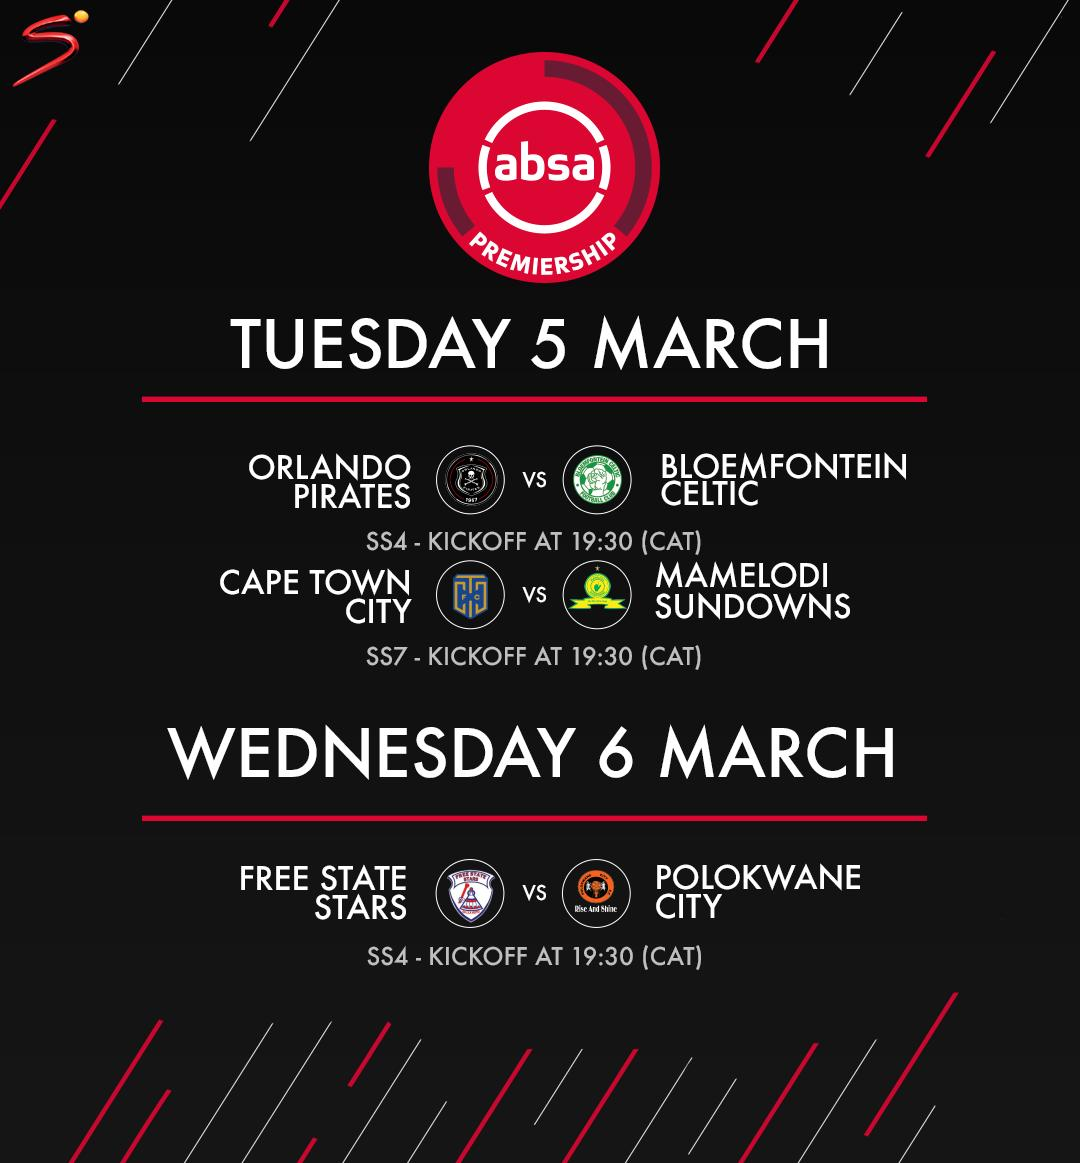 The two top teams in the #AbsaPrem are in action this week 🇿🇦 ⚽️